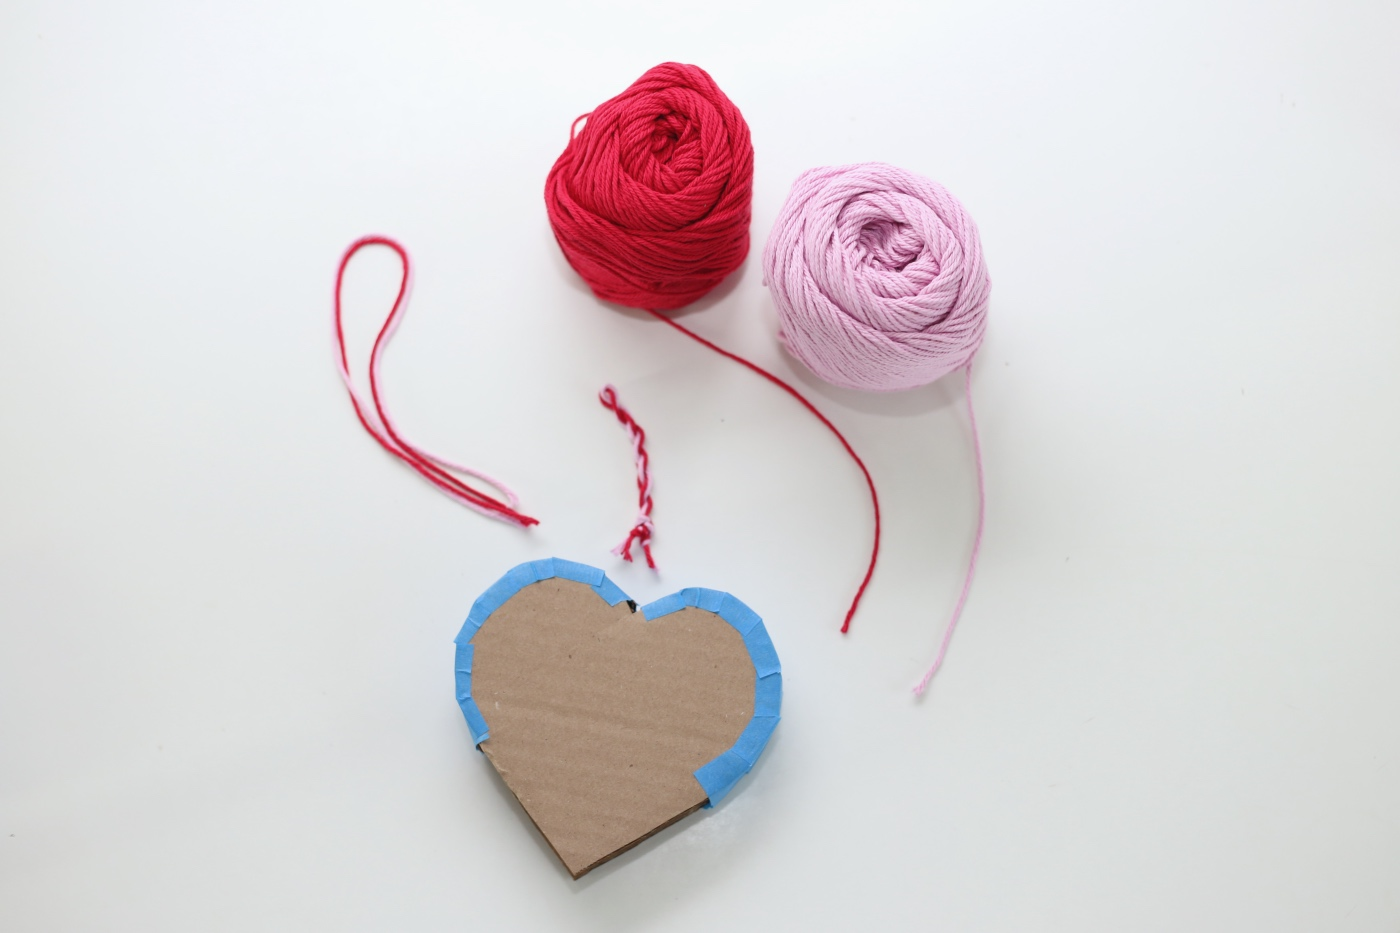 add a twist of yarn to the top mini heart pinata diy